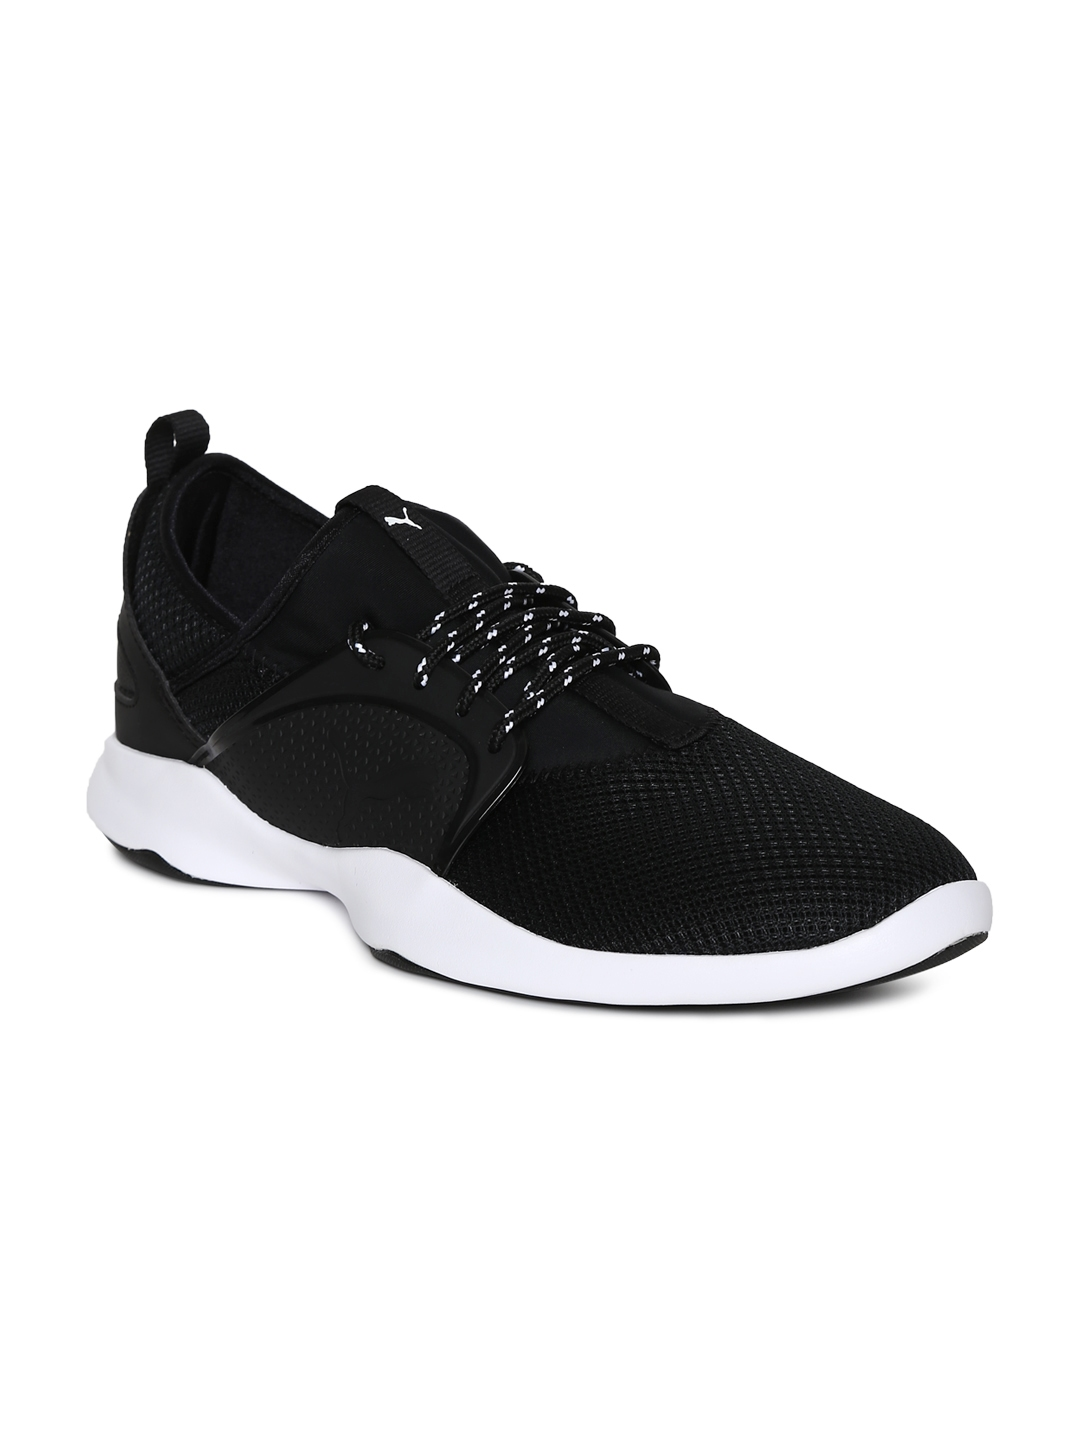 8db400413e Buy Puma Unisex Black Dare Lace Sneakers - Casual Shoes for Unisex ...